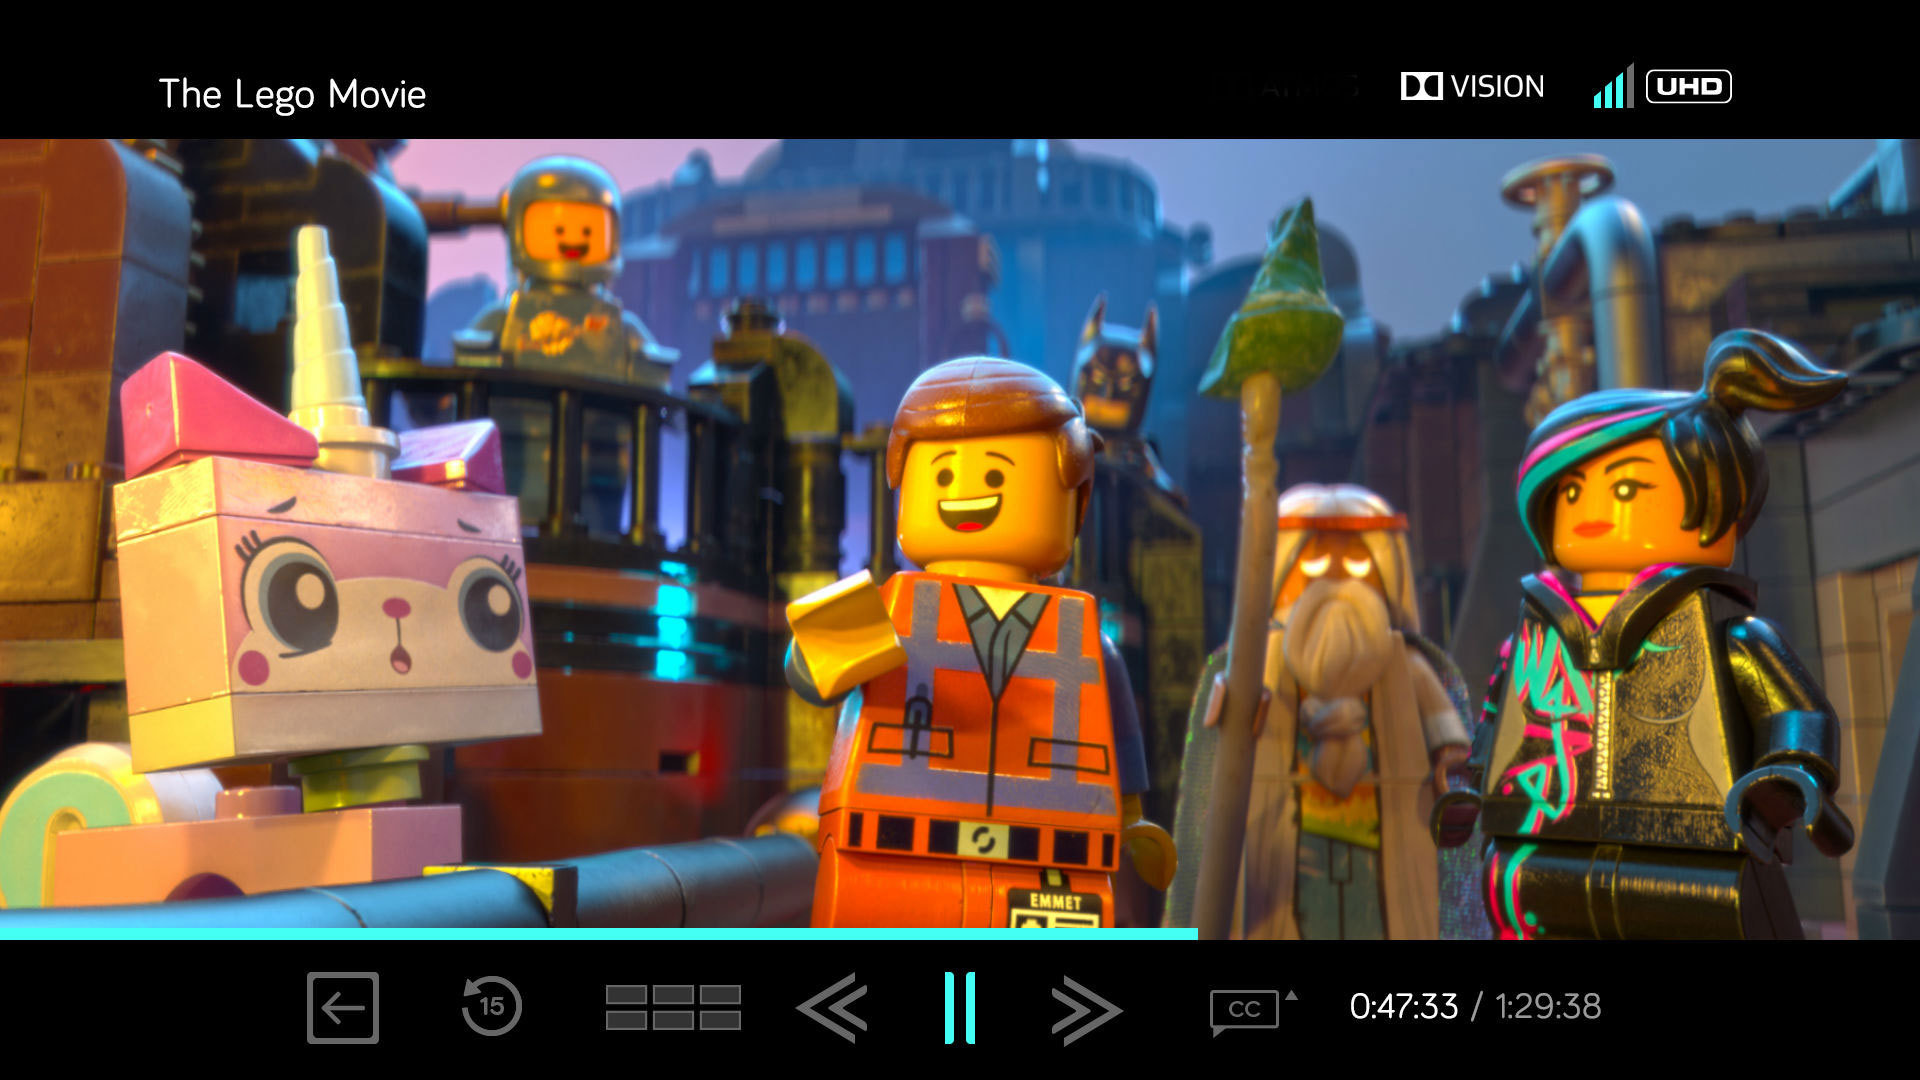 The Lego Movie im Vudu Player